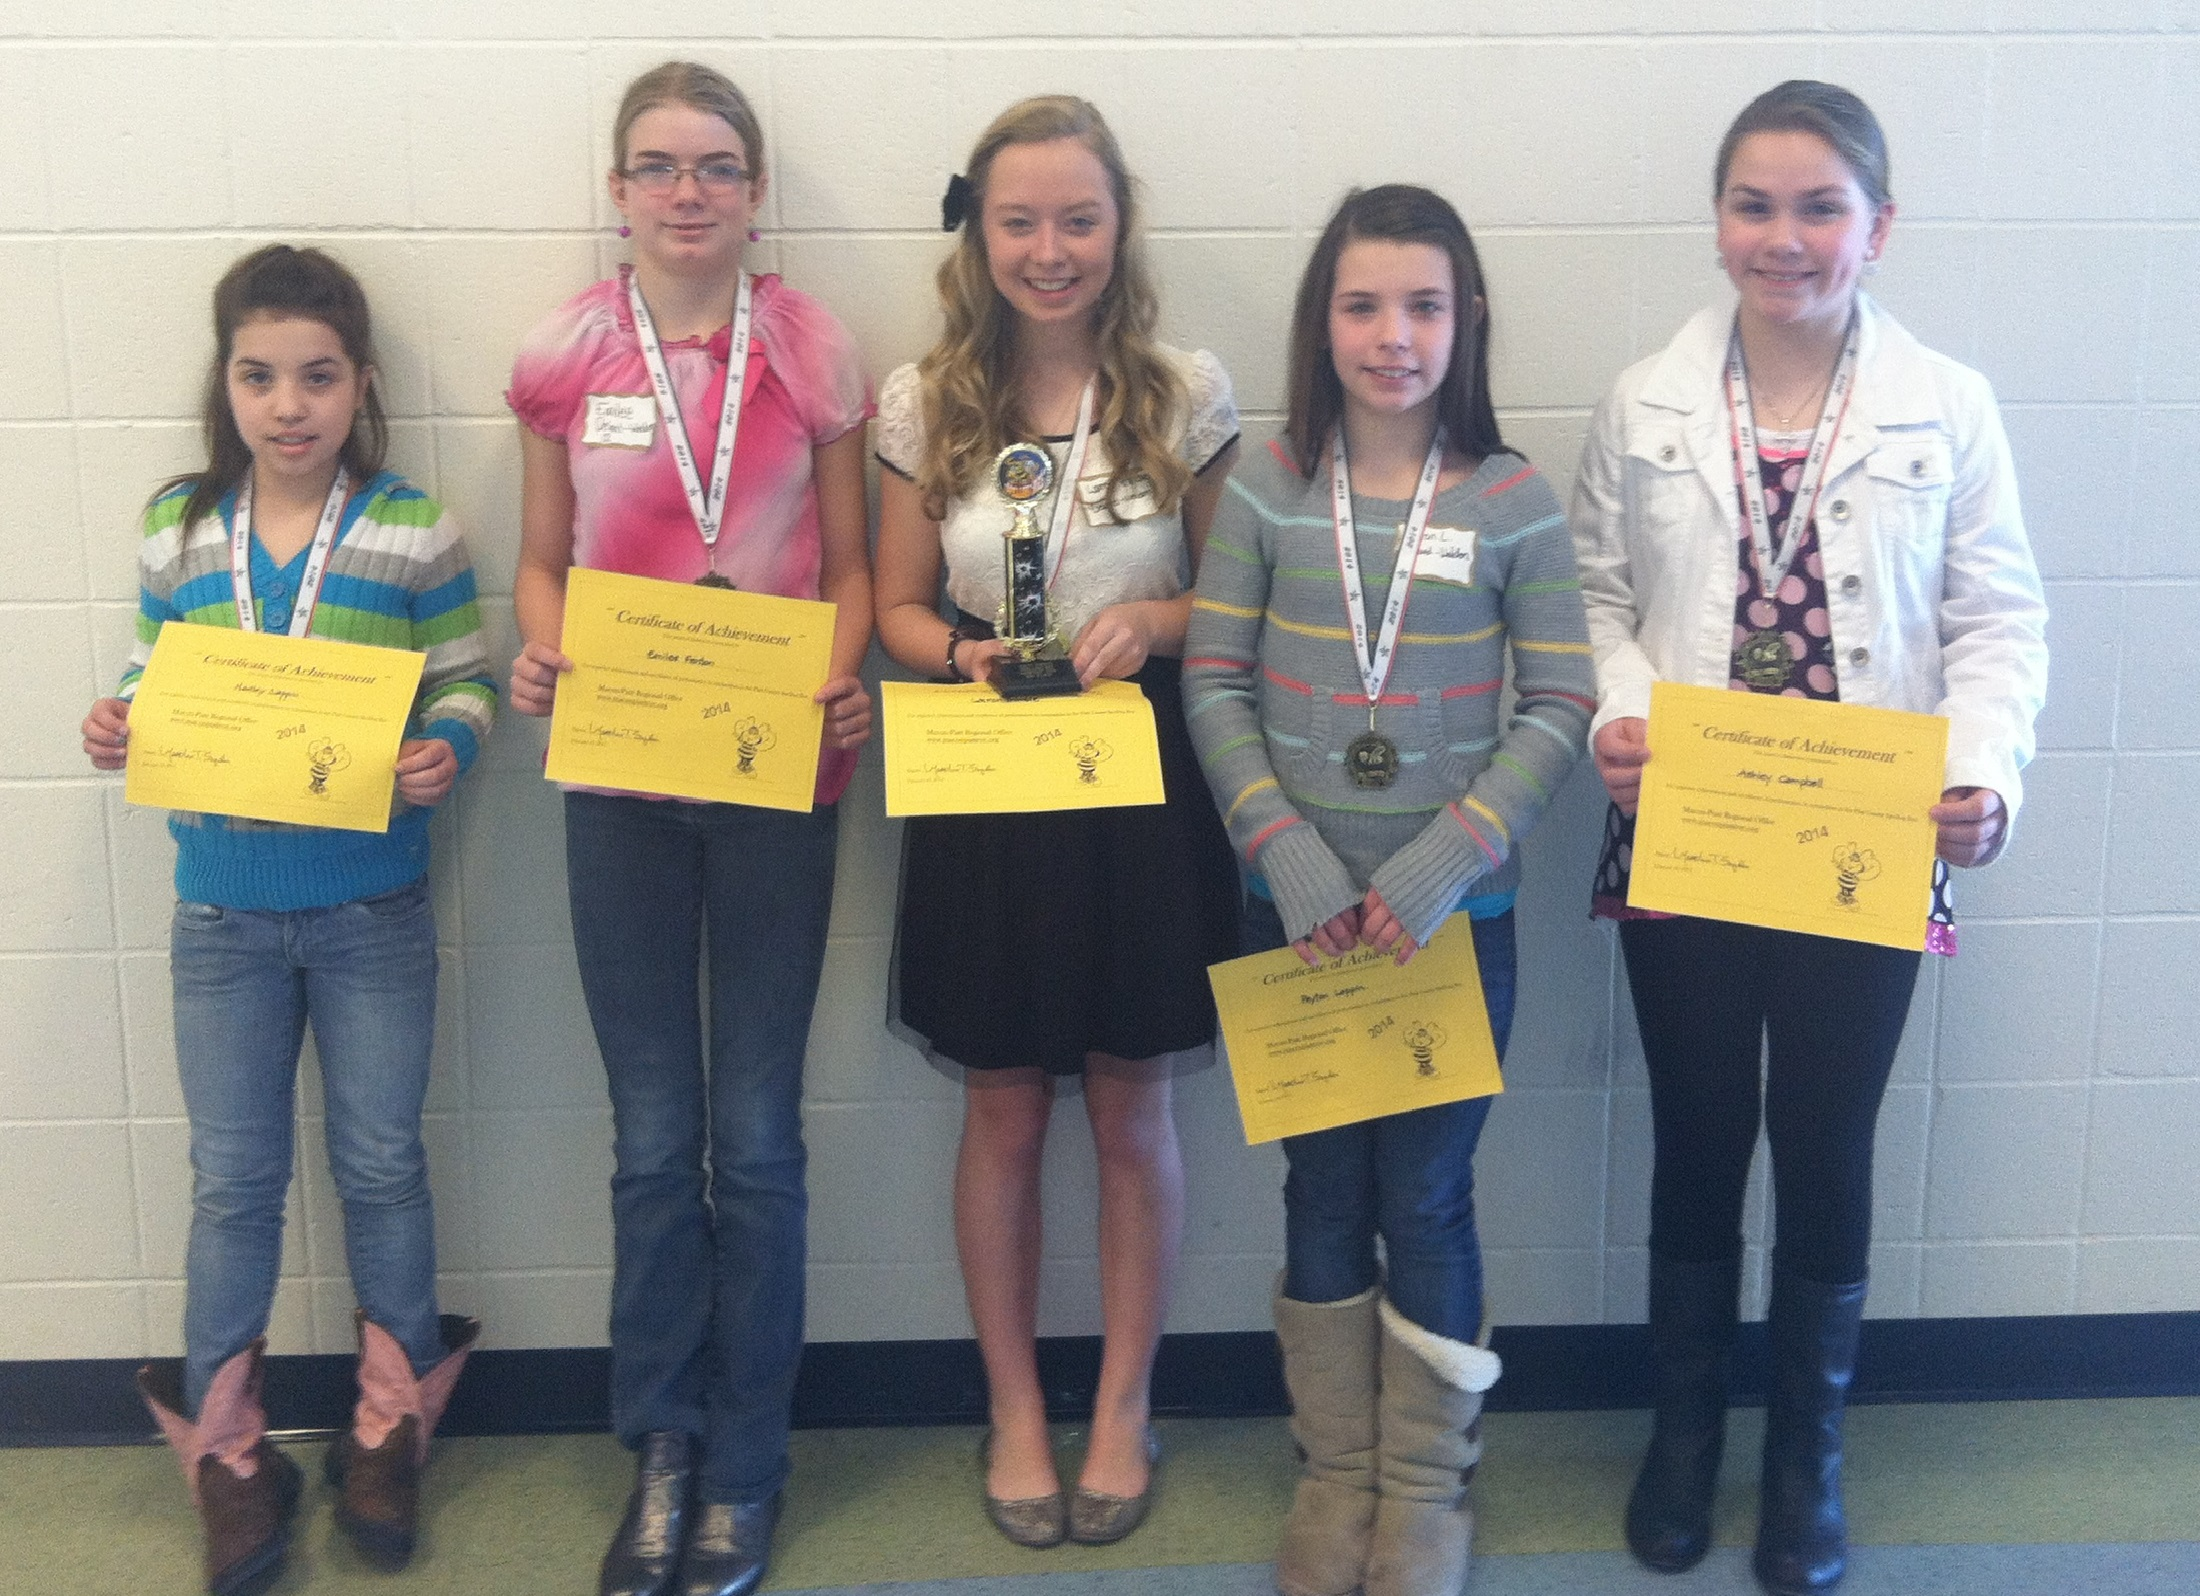 Illinois piatt county monticello - Piatt County Spelling Bee Was Held On Feb 19th In Monticello Dw Contestants Were Hadley Lappin Grade4 Emilee Fenton Grade7 Lauren Trimble Grade 8